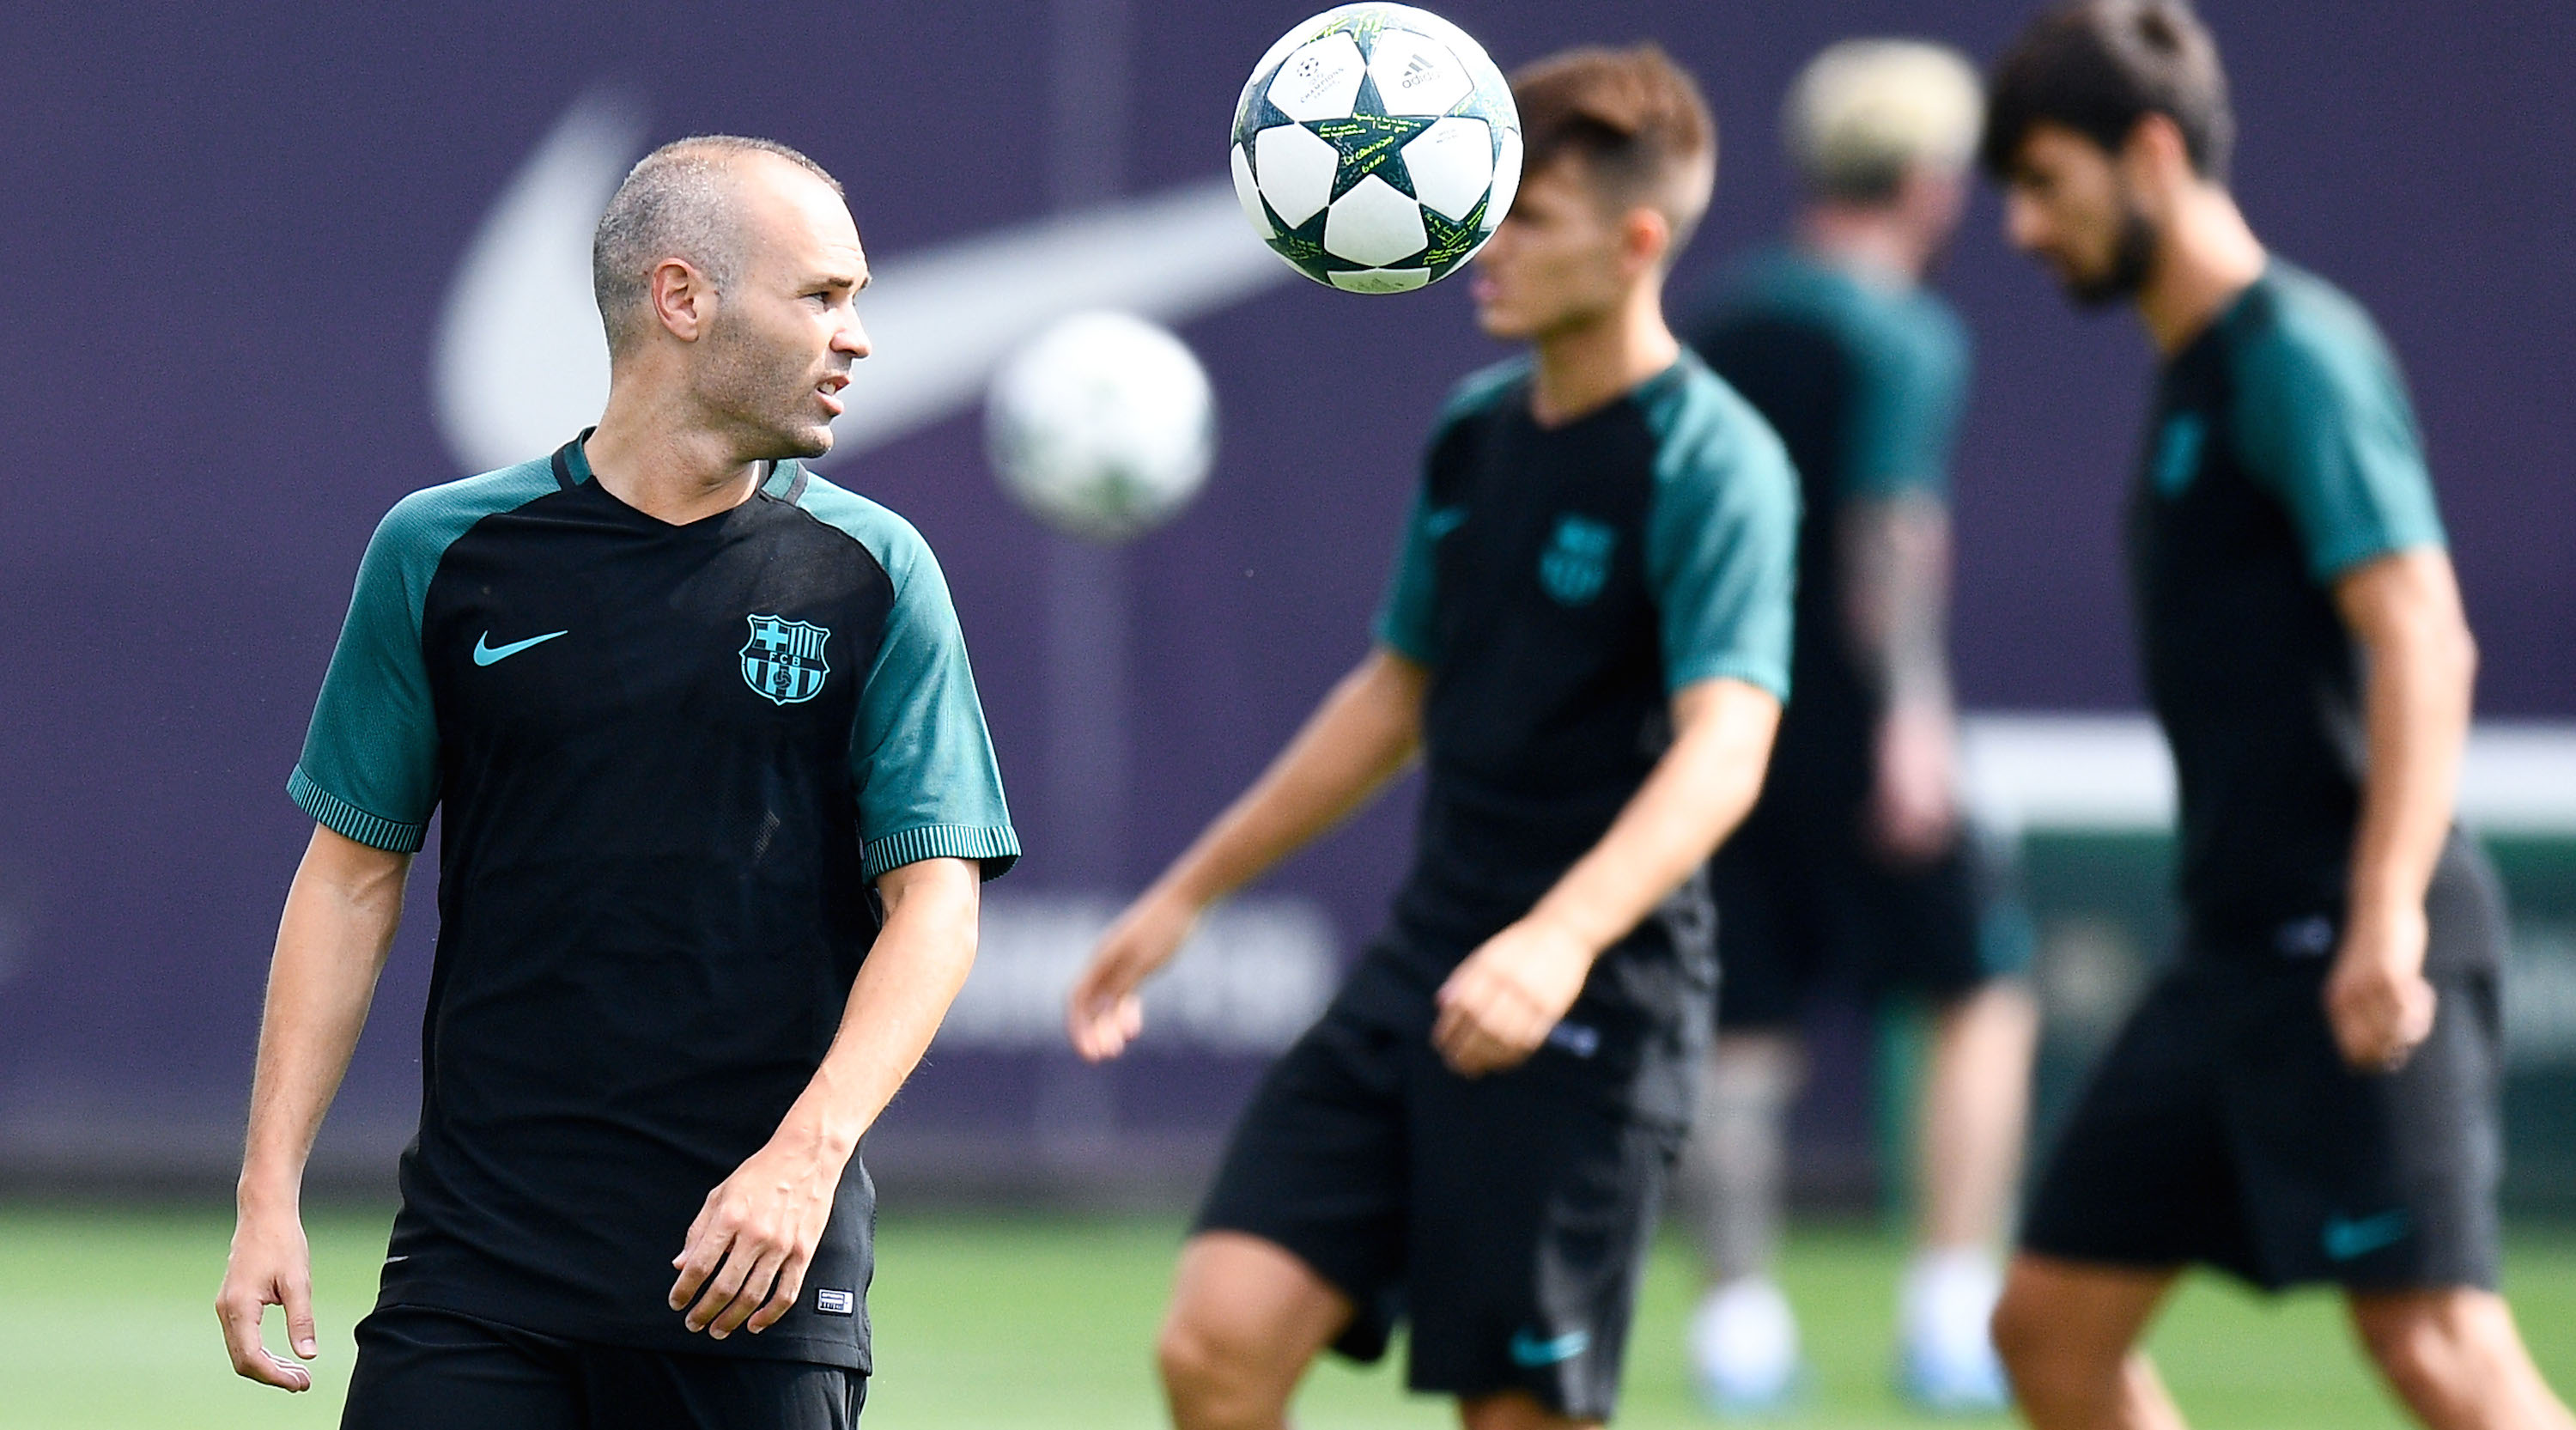 BARCELONA, SPAIN - SEPTEMBER 12: Andres Iniesta of FC Barcelona juggles the ball during a training session ahead of their UEFA Champions League Group C match against Celtic FC at Ciutat Esportiva of Sant Joan Despi on September 12, 2016 in Barcelona, Spain. (Photo by David Ramos/Getty Images)